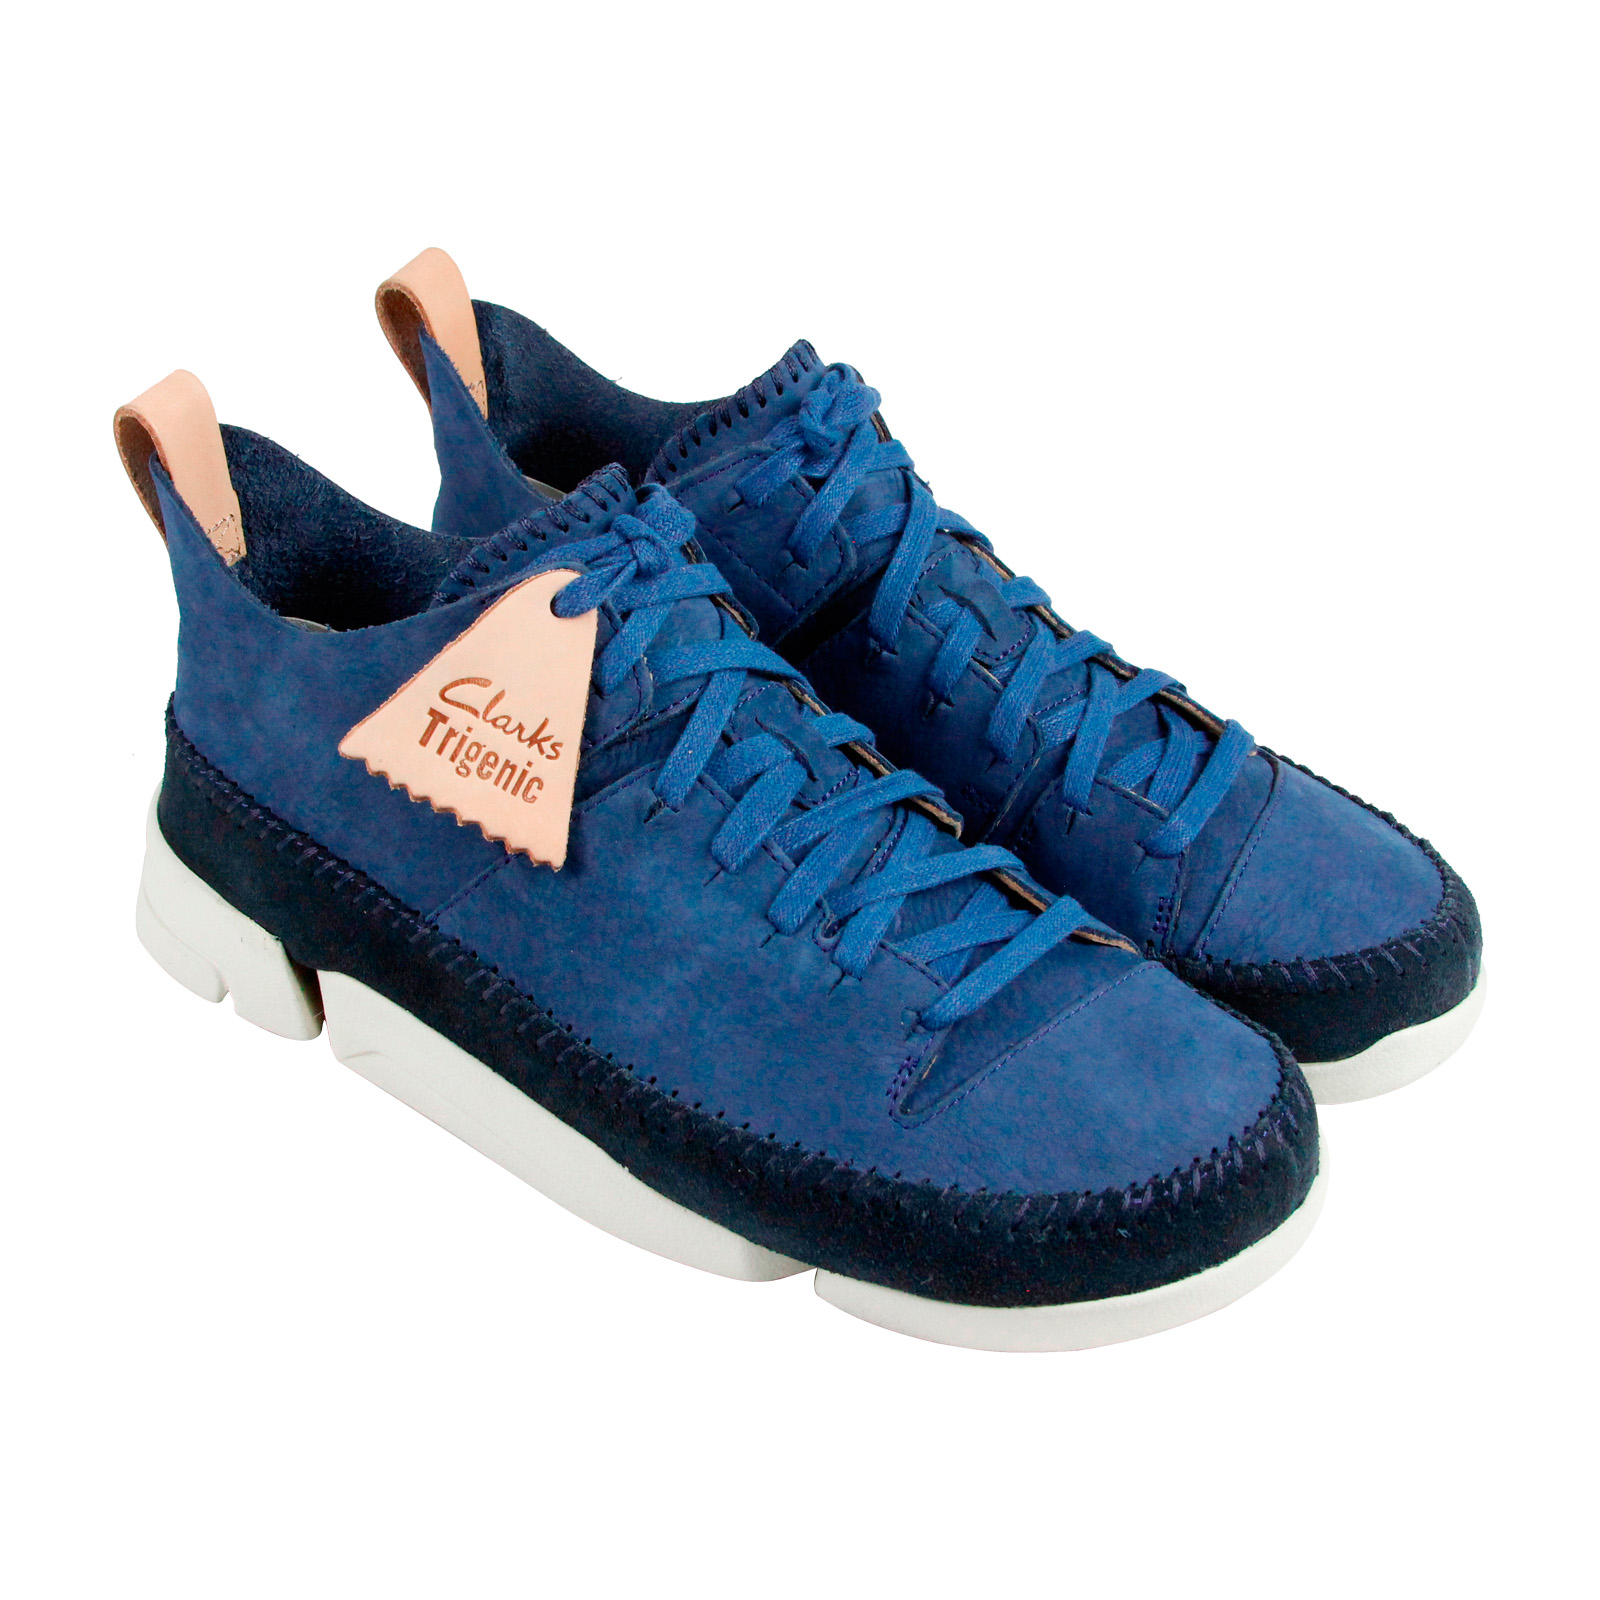 Clarks Trigenic Flex Mens Blue Leather Lace Up Lace Up Sneakers Shoes